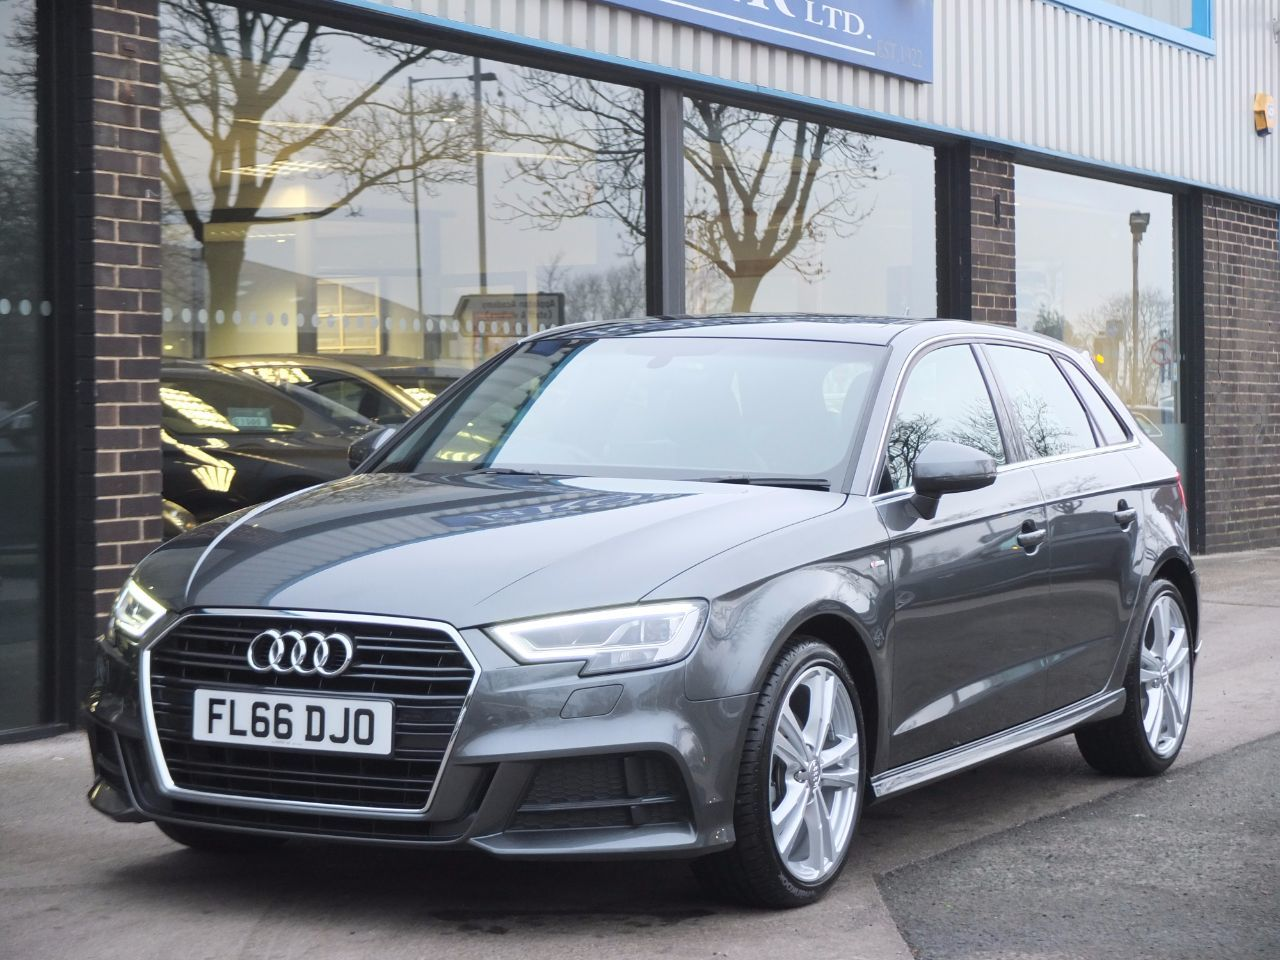 Used Audi Cars Bradford Second Hand Cars West Yorkshire